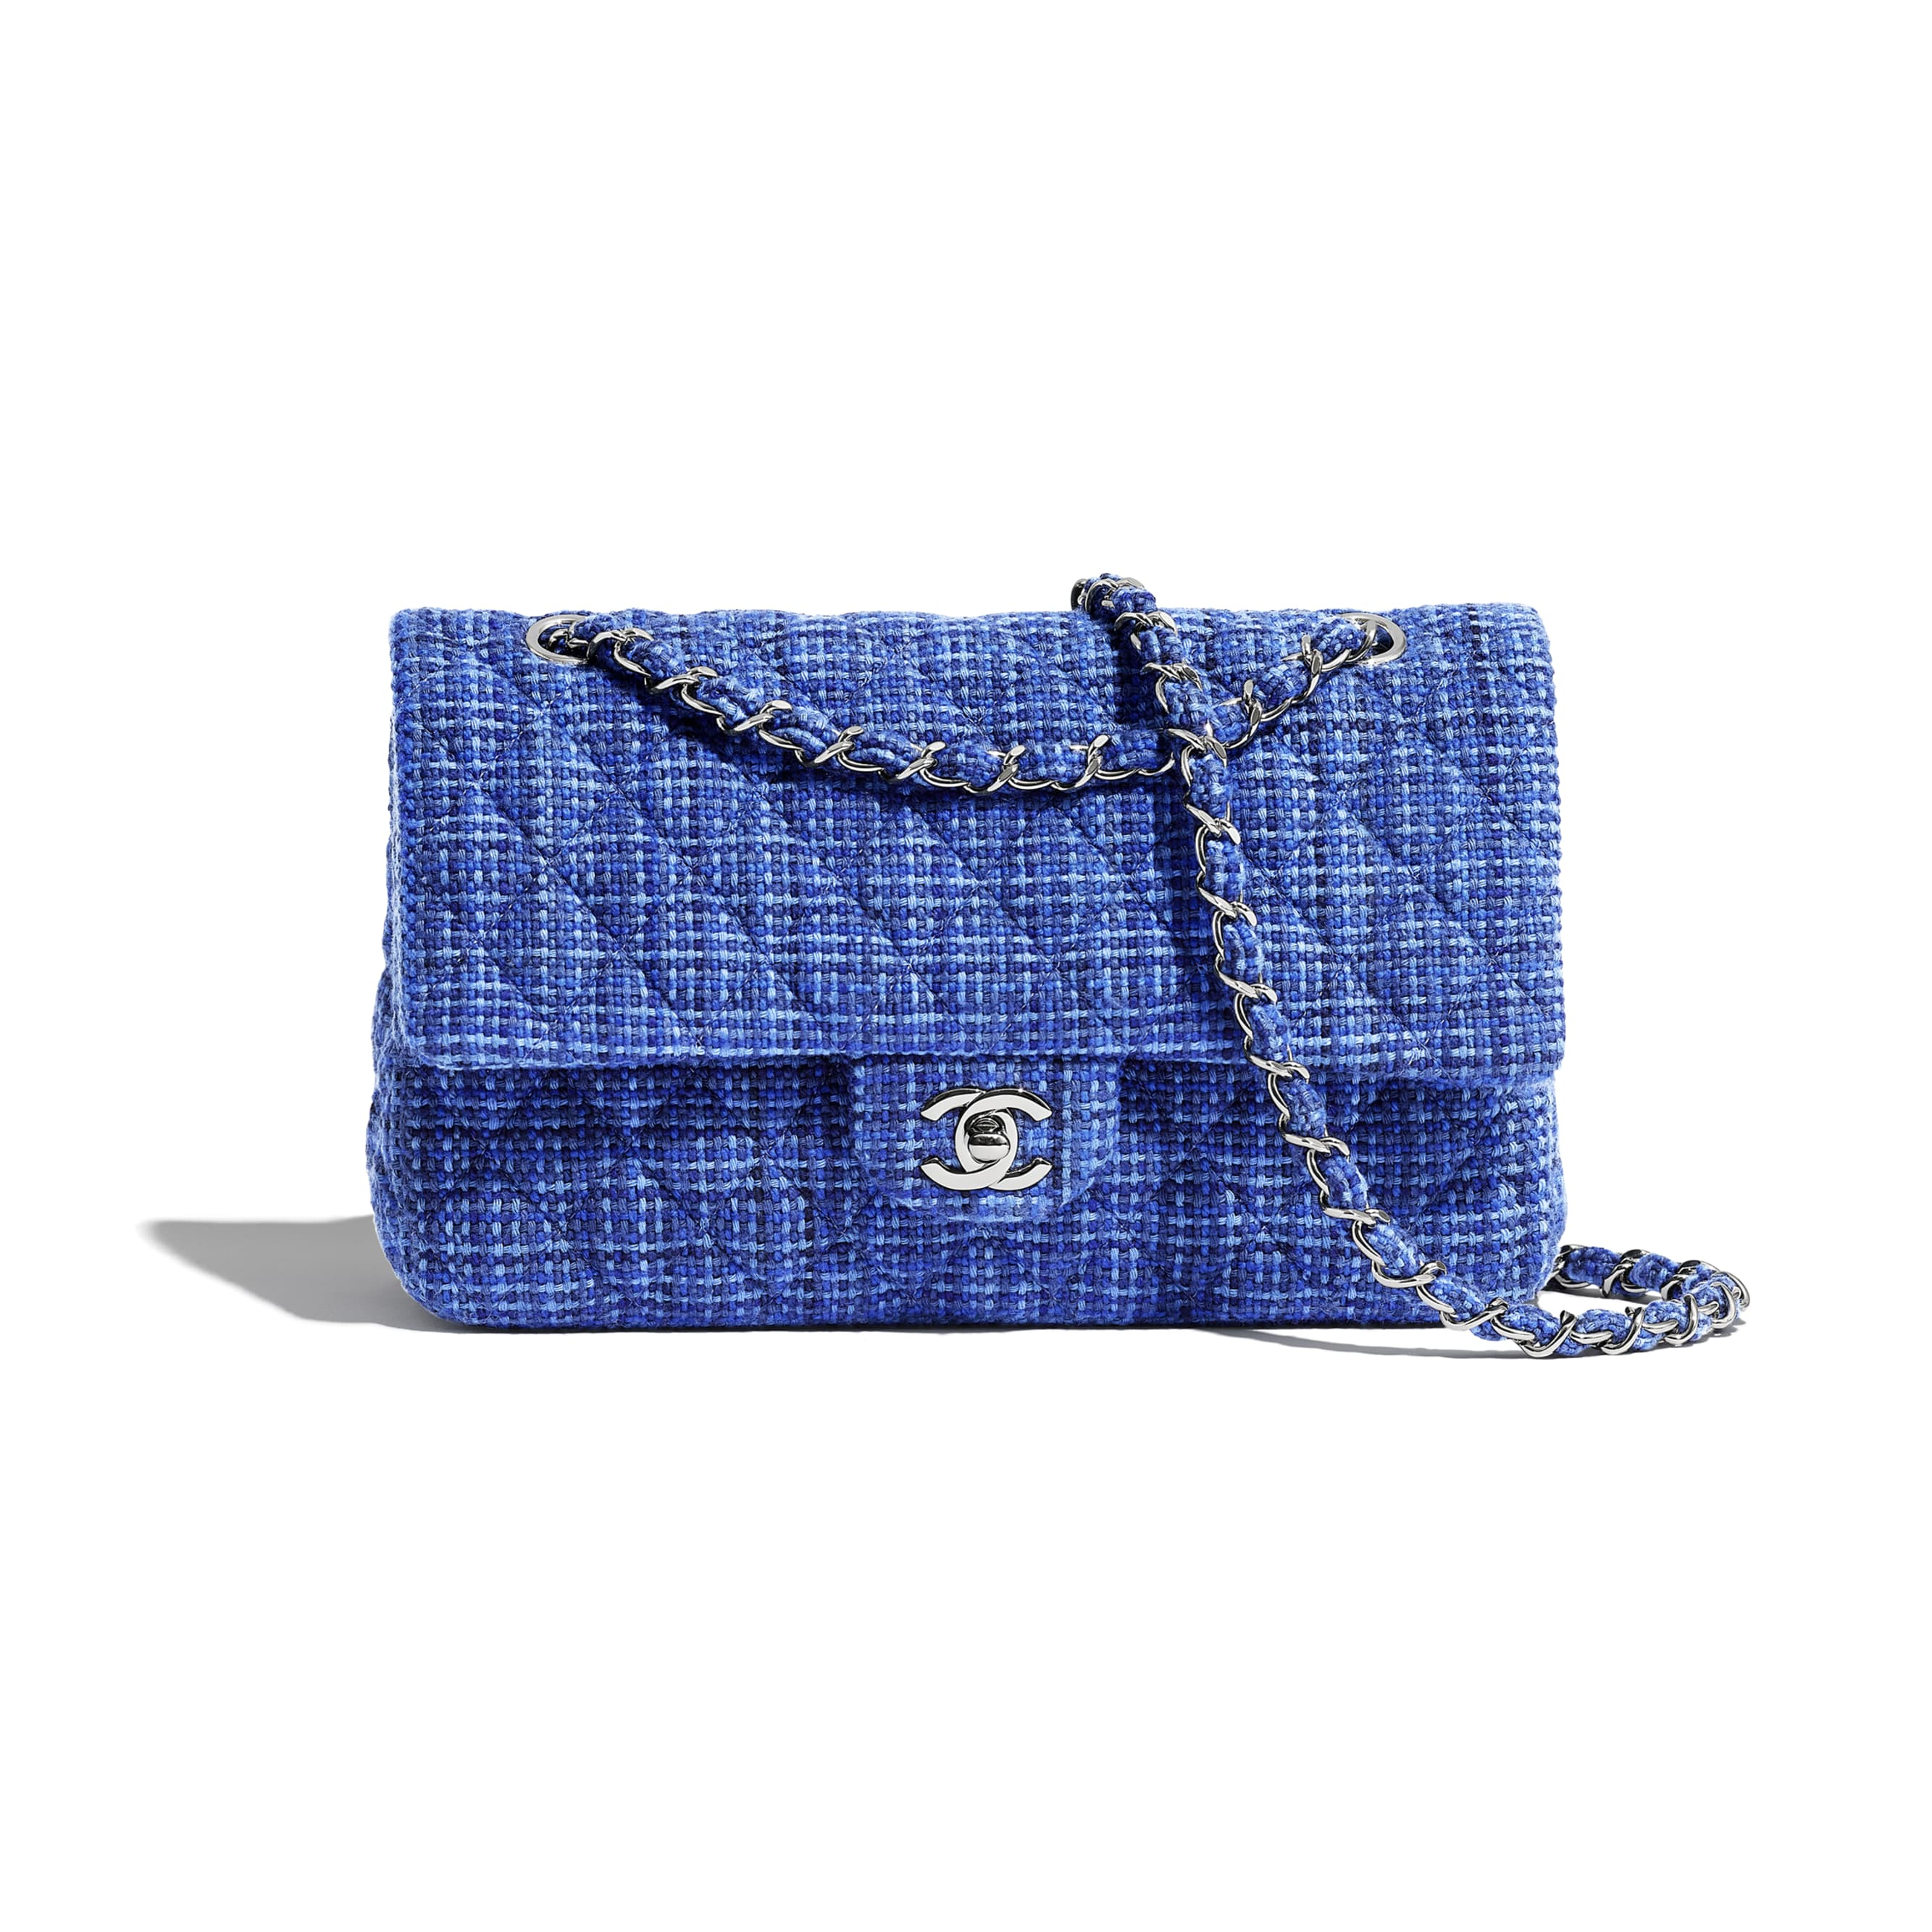 Classic Handbag - Blue - Tweed & Silver-Tone Metal - Default view - see standard sized version